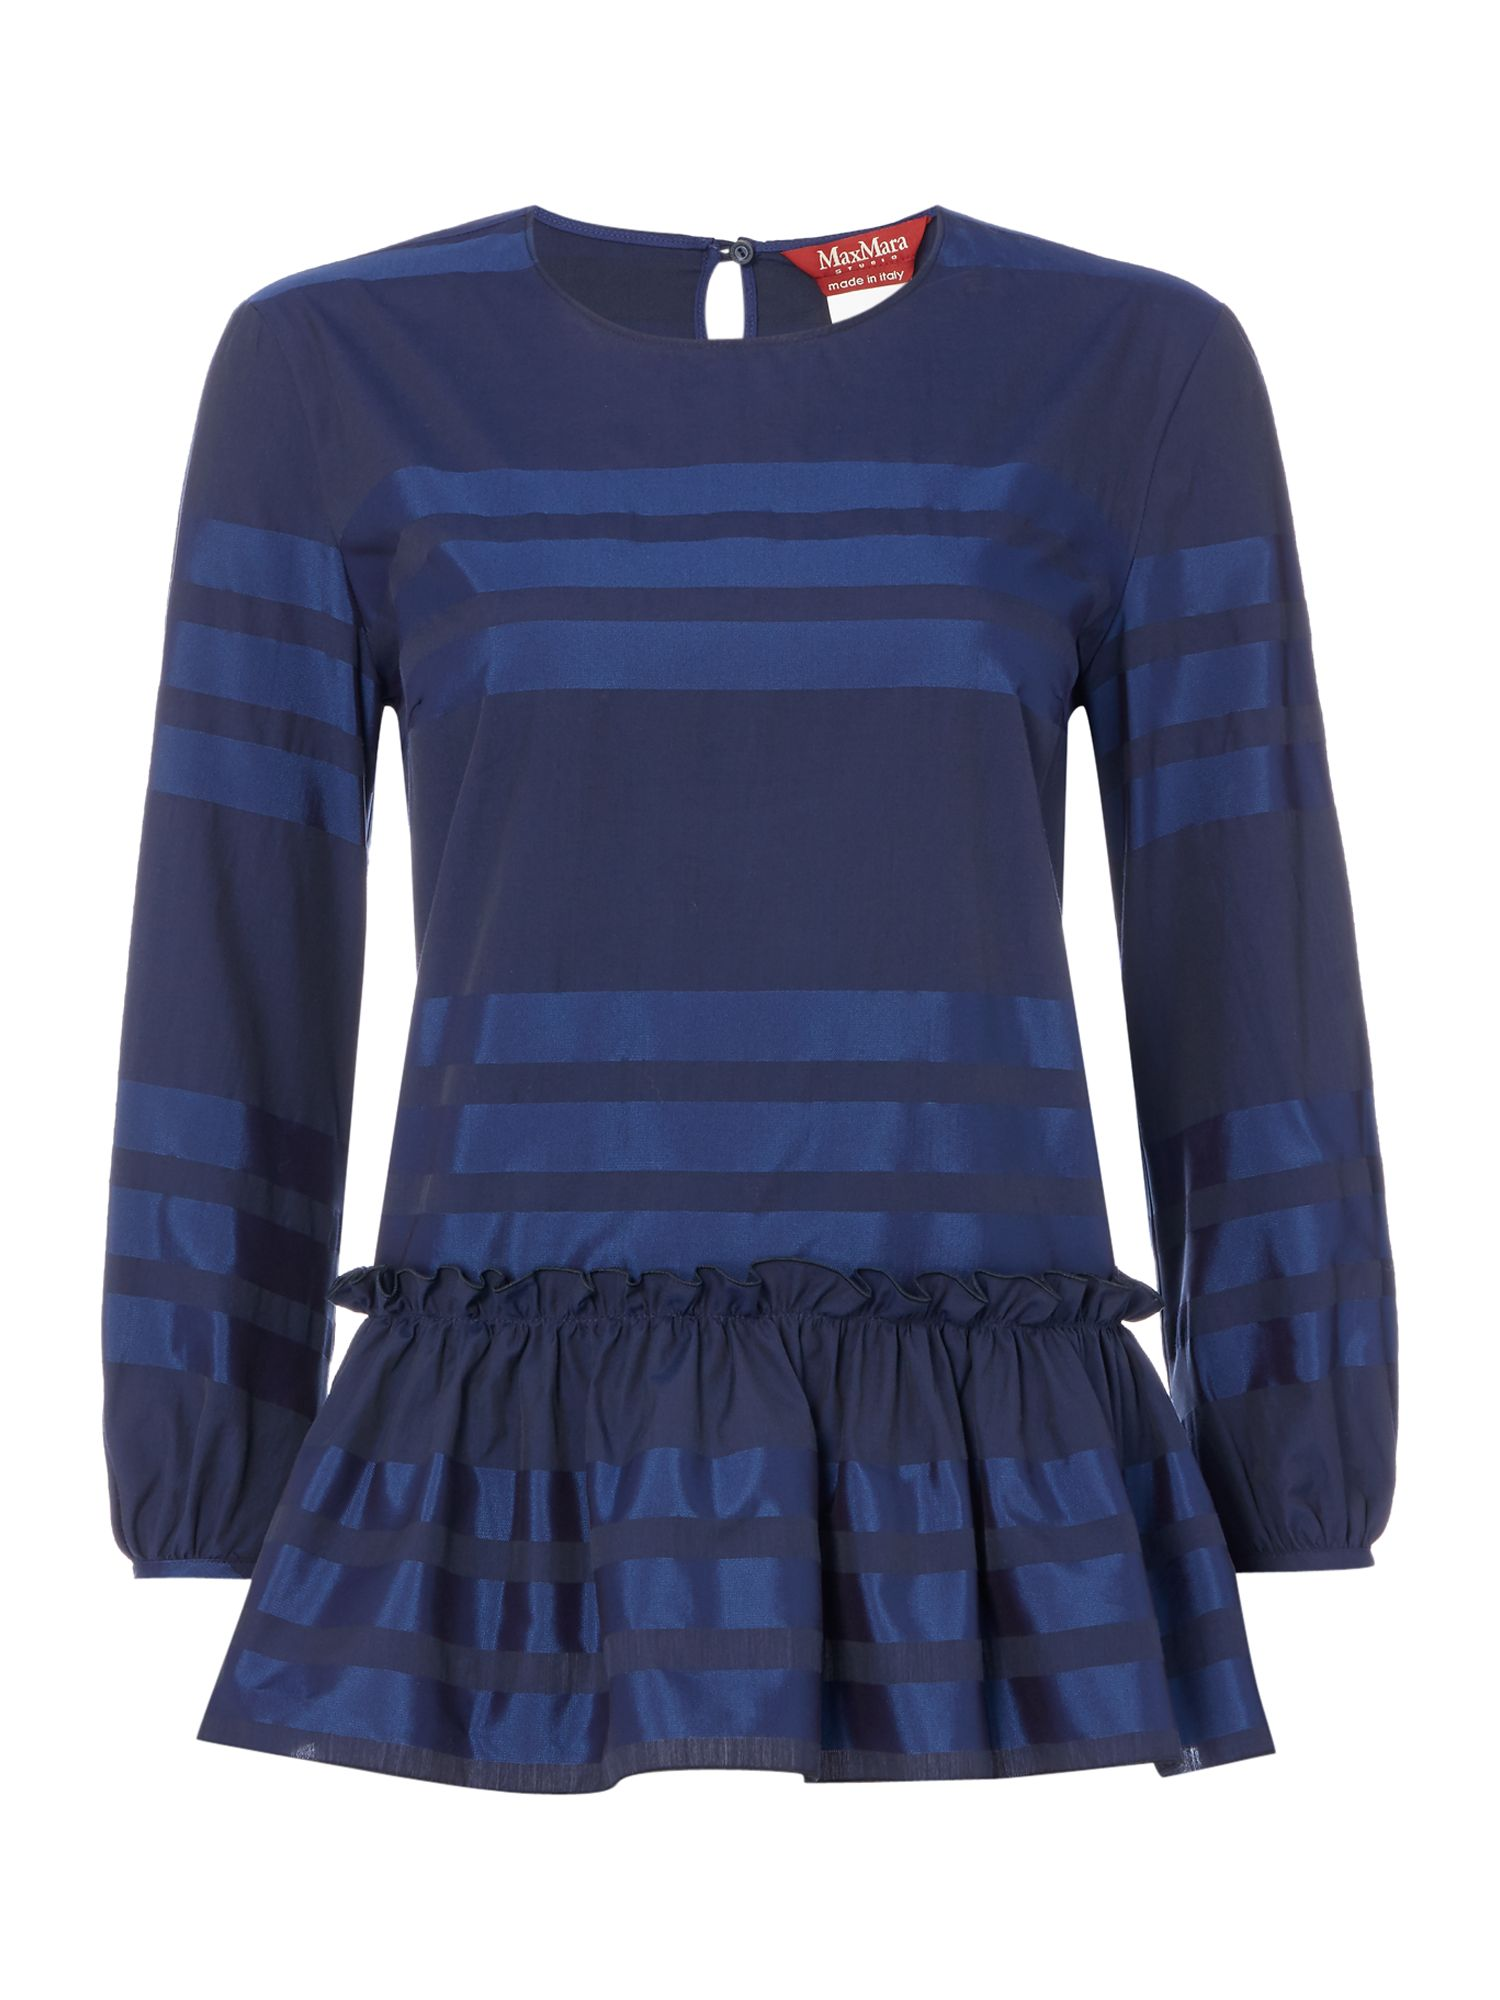 Max Mara Studio Zante striped blouse with ruffle detail, Blue